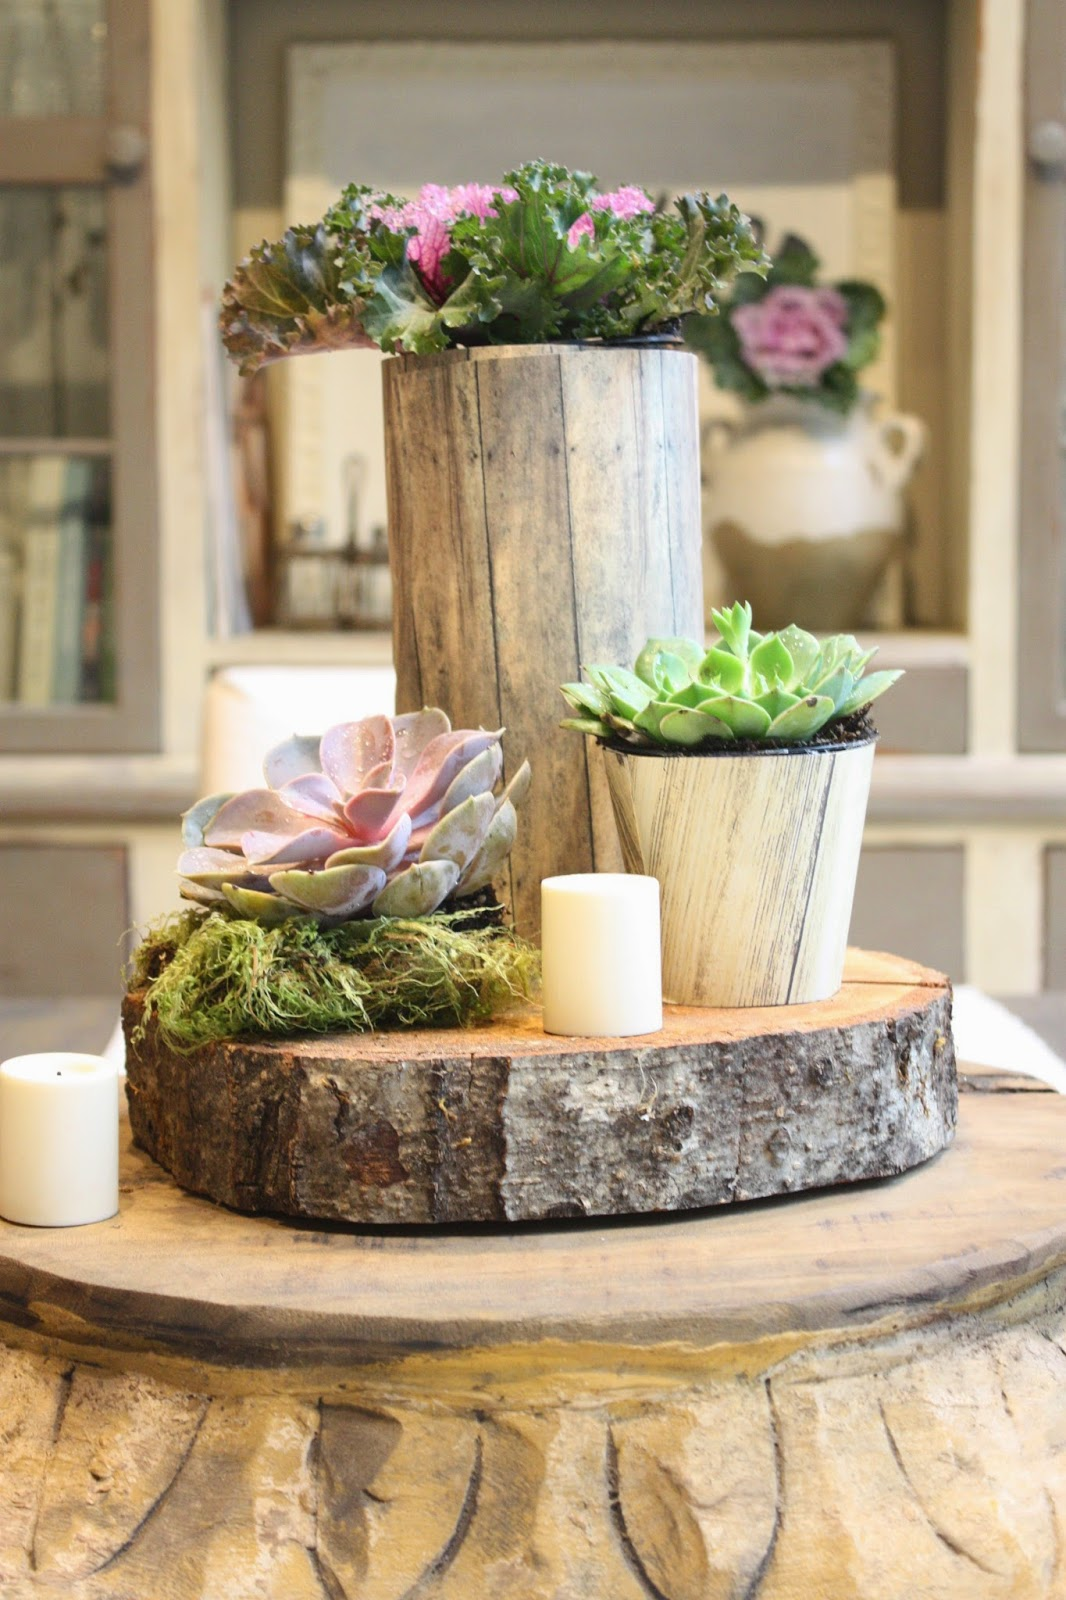 59 Incredibly Simple Rustic Décor Ideas That Can Make Your: My Sweet Savannah: ~DIY Rustic Centerpiece~